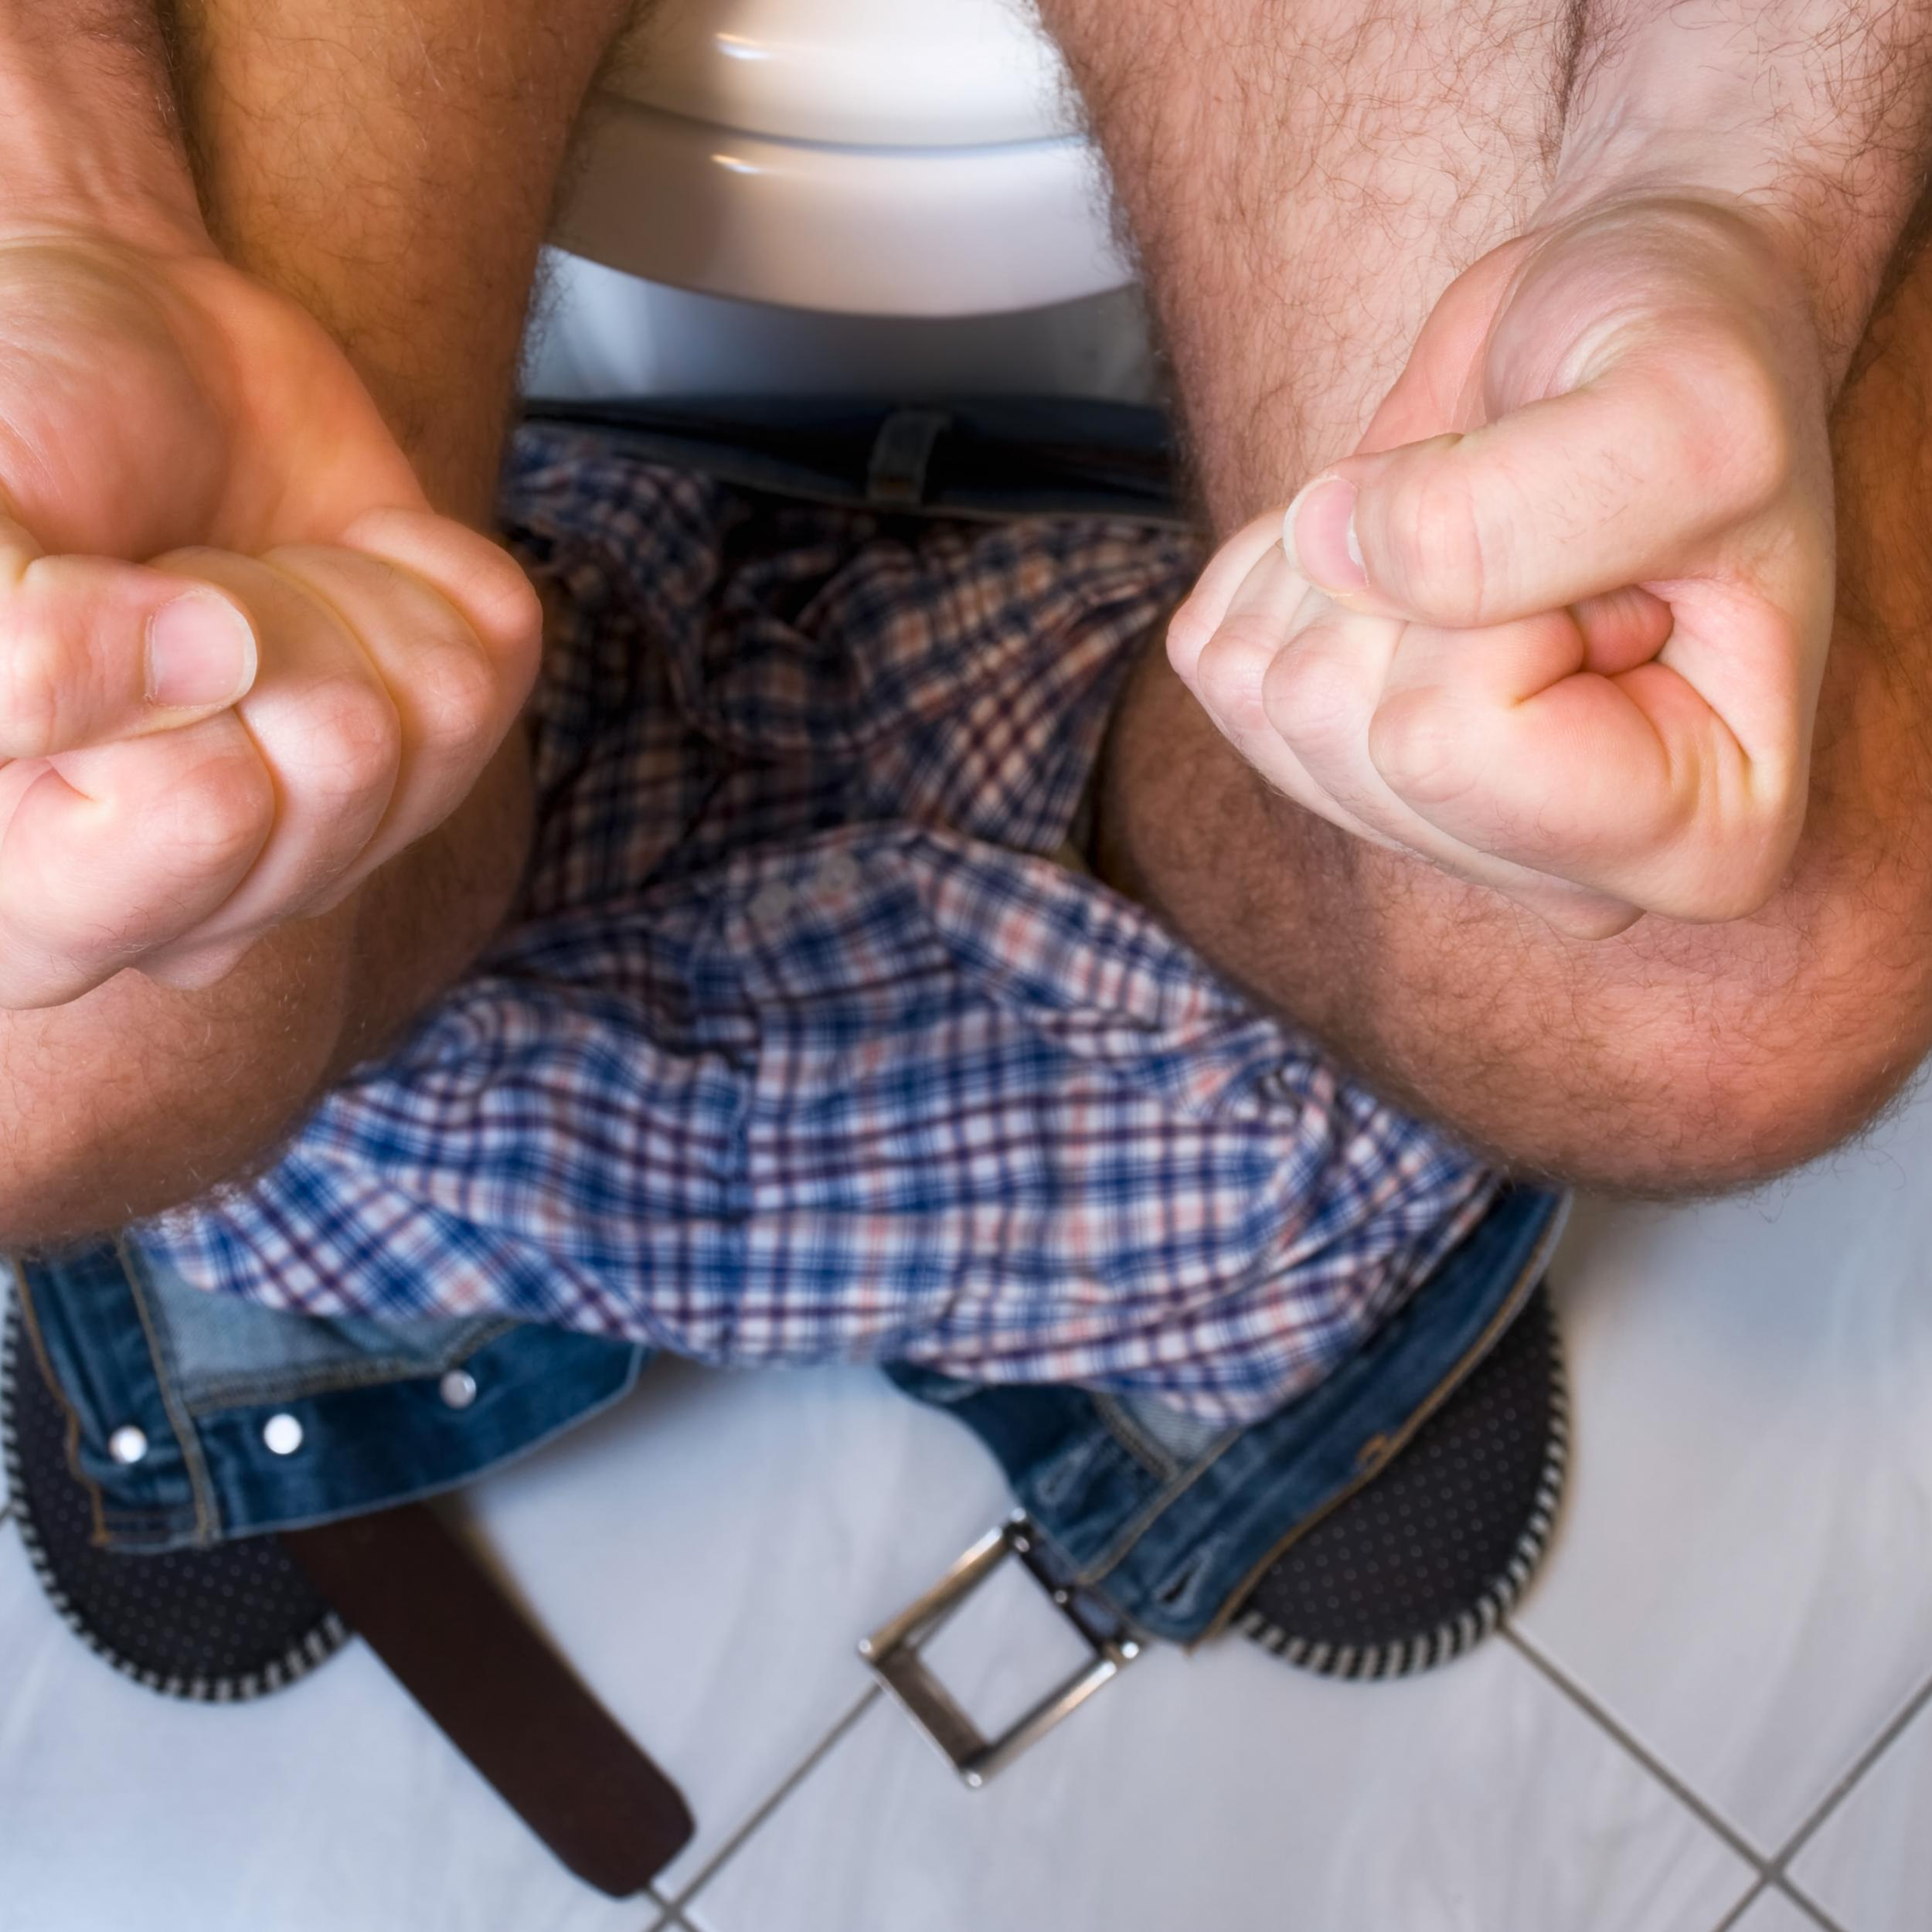 Constipation Pain, For Starters: What Would Happen If You Didn't